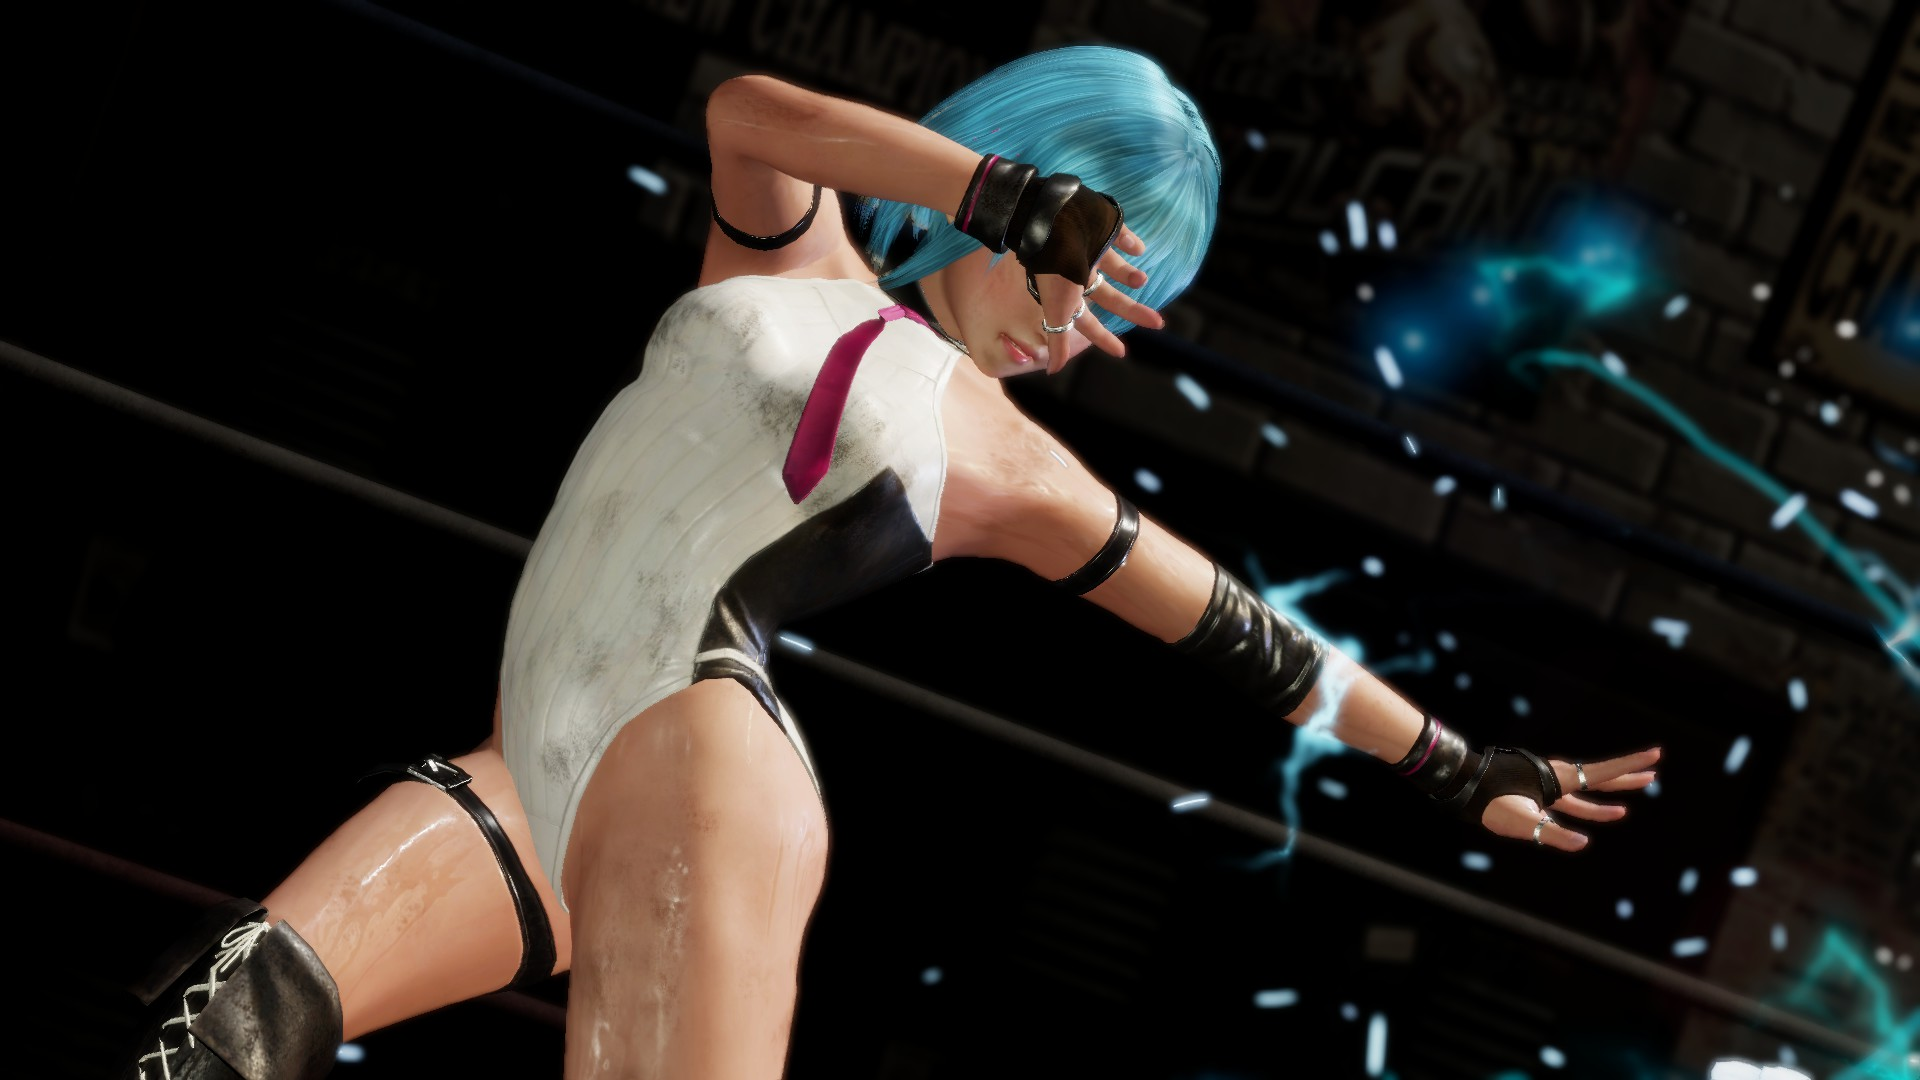 838380_screenshots_20190319155156_1.jpg - Dead or Alive 6